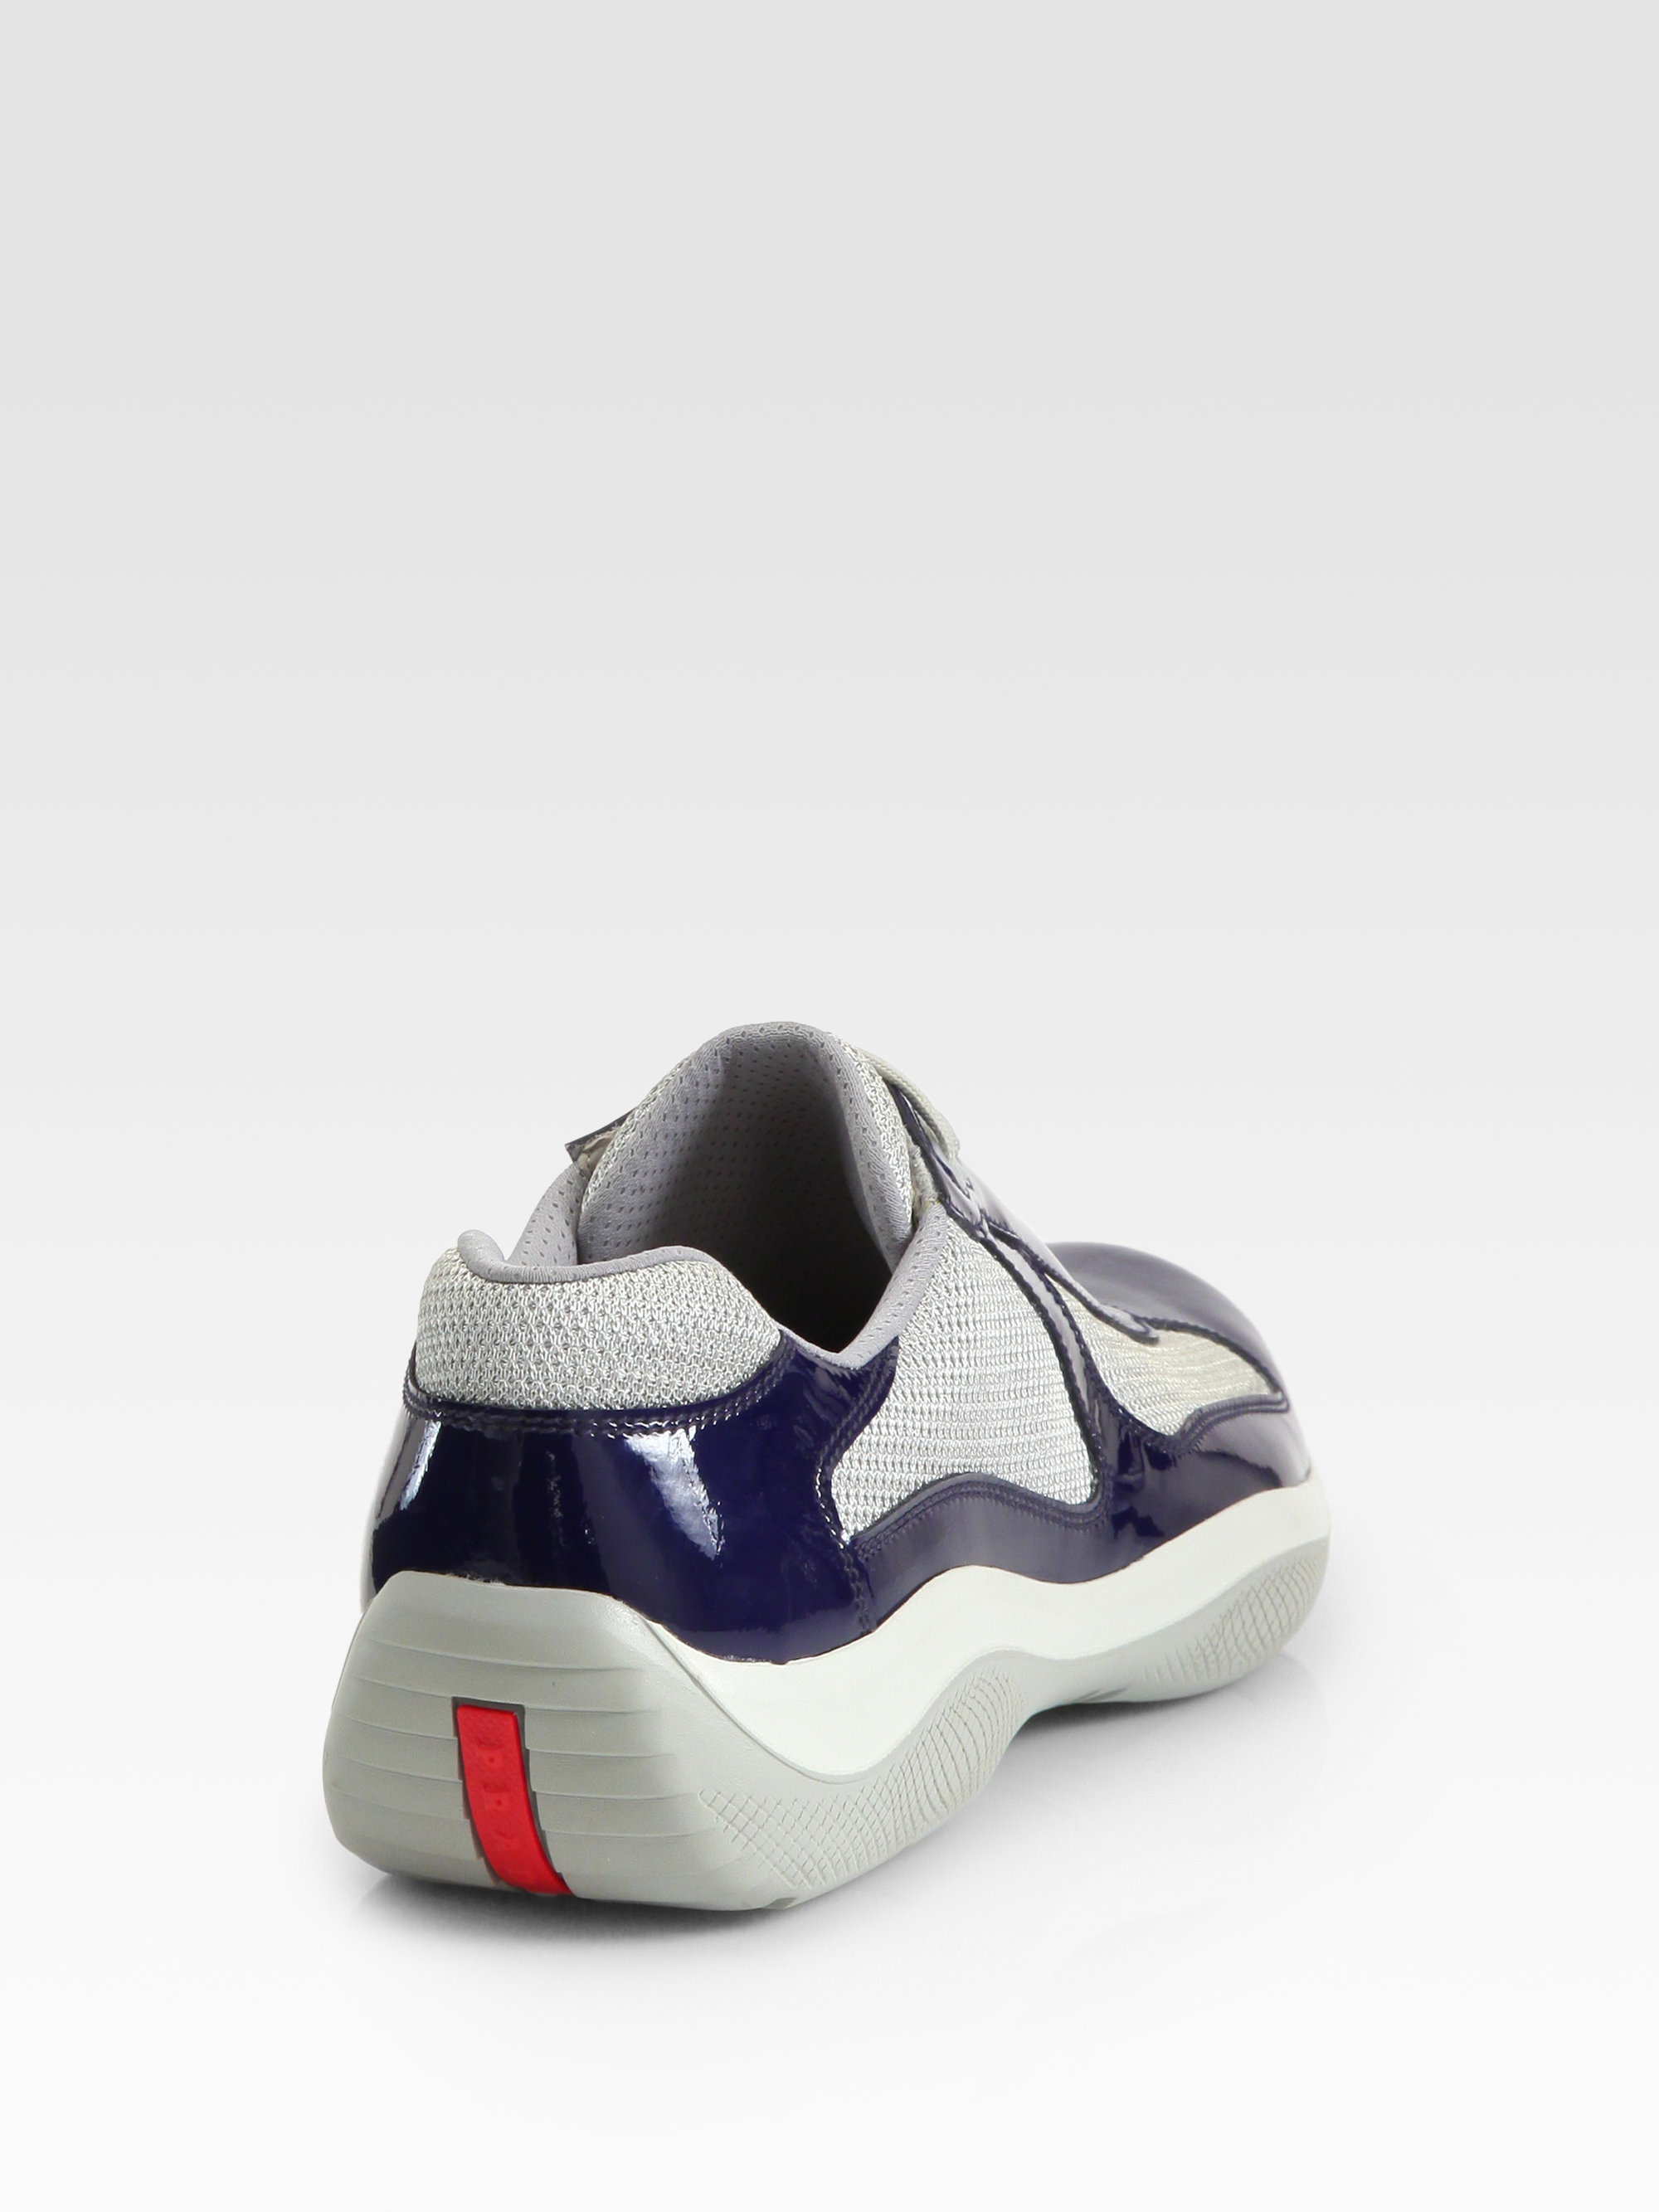 Prada Americas Cup Patent Leather Sneakers In Blue For Men